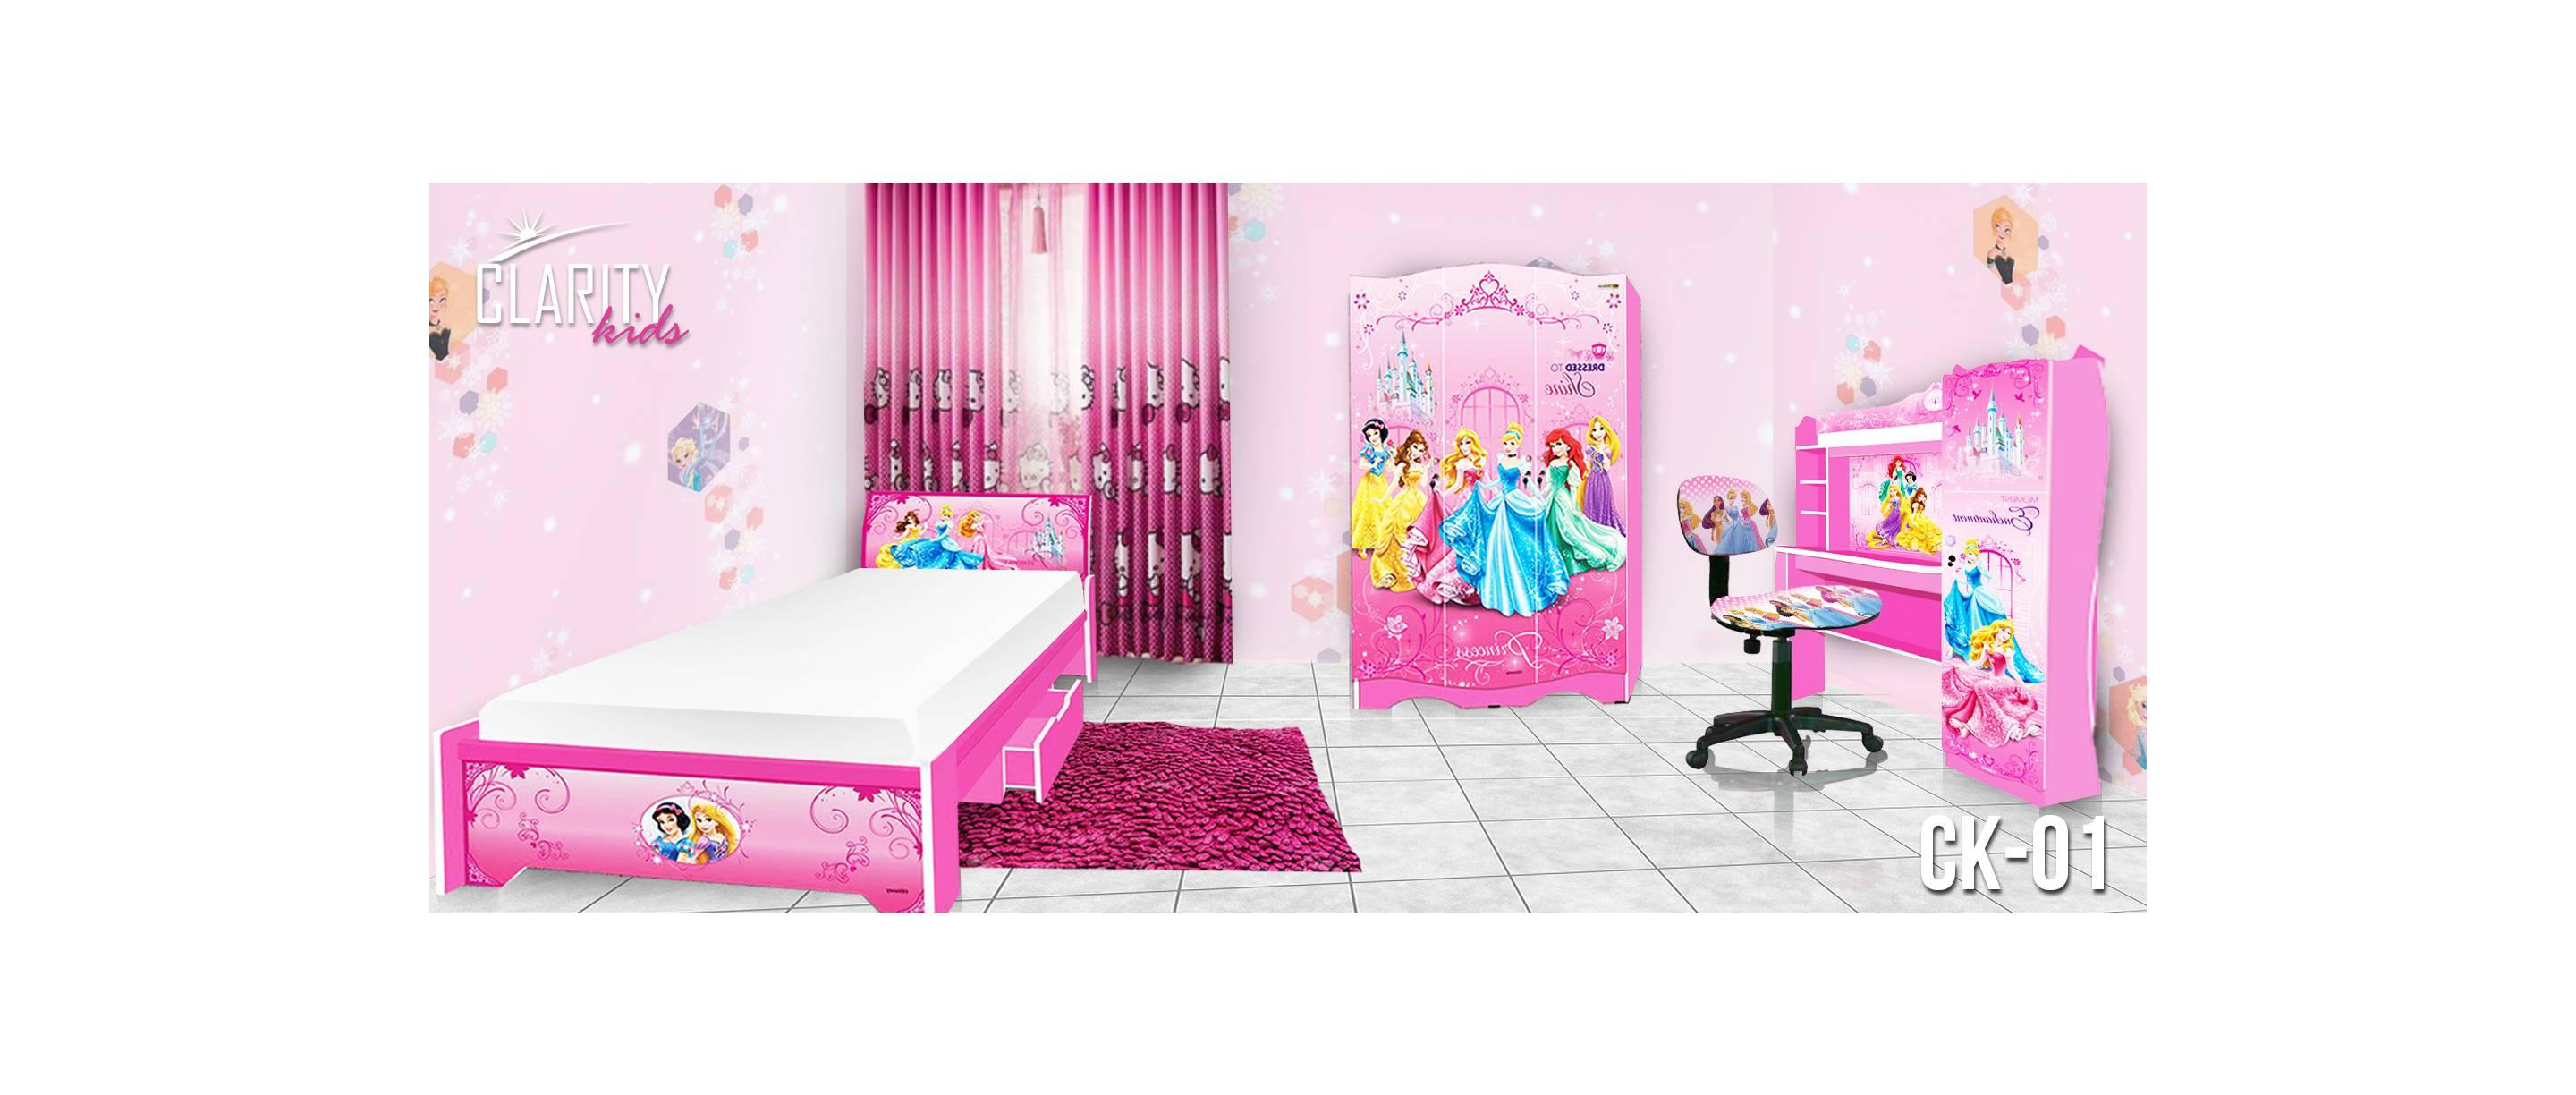 Bedroom Set Clarity Kids Bed Room CK-01 Princess Kamar Tidur Anak